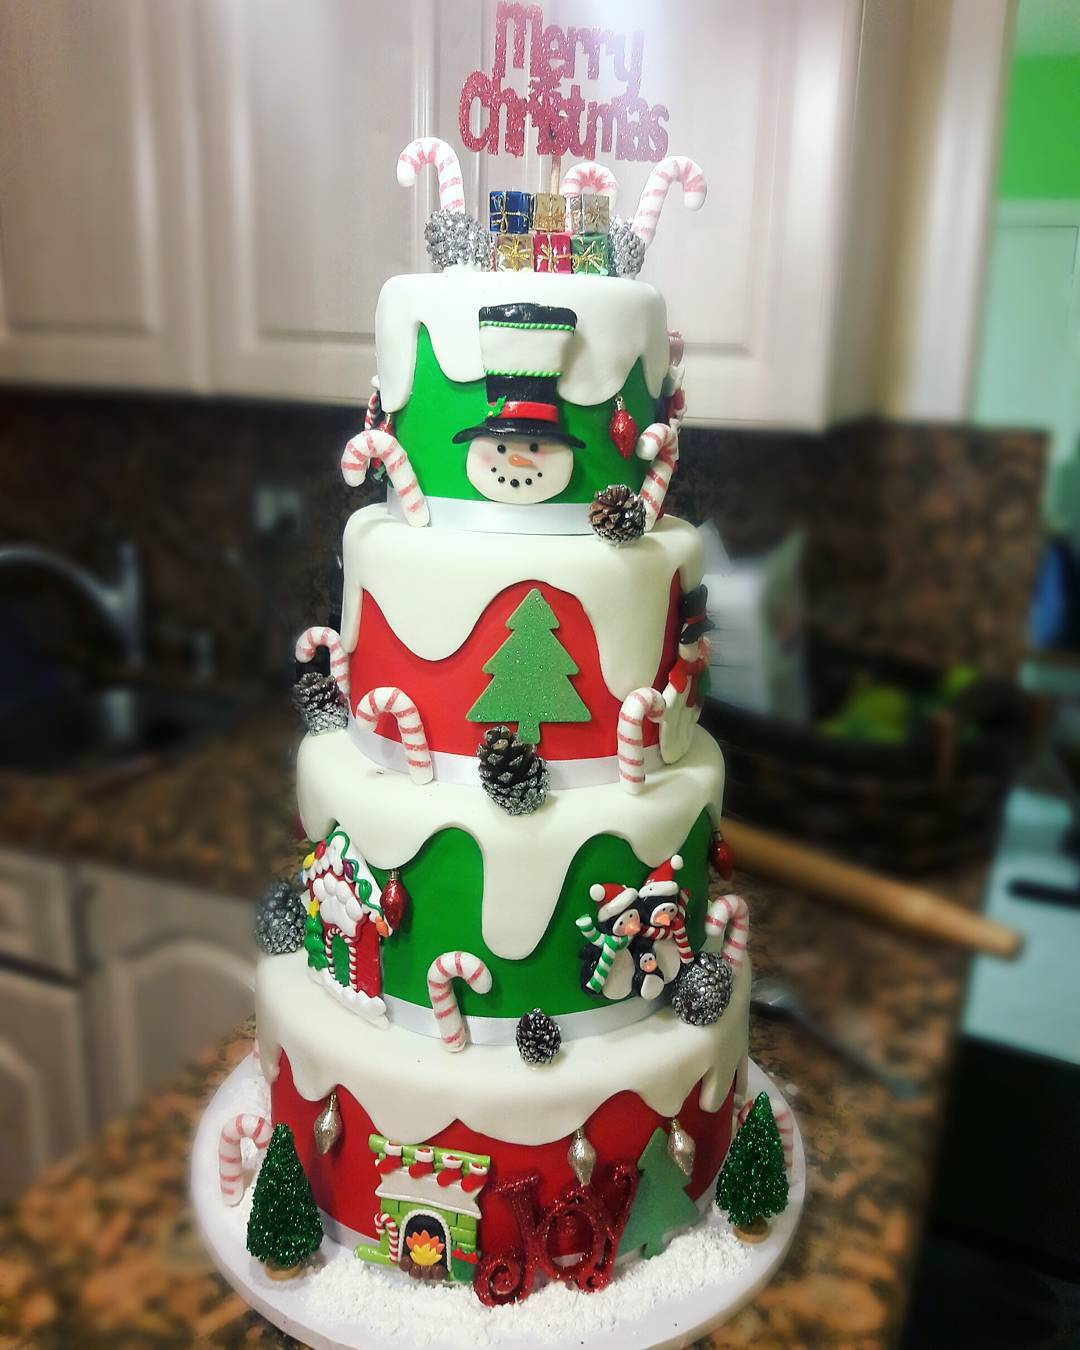 40 Enjoy Easy And Delicious Cakes With These Amazing Christmas Cake Ideas